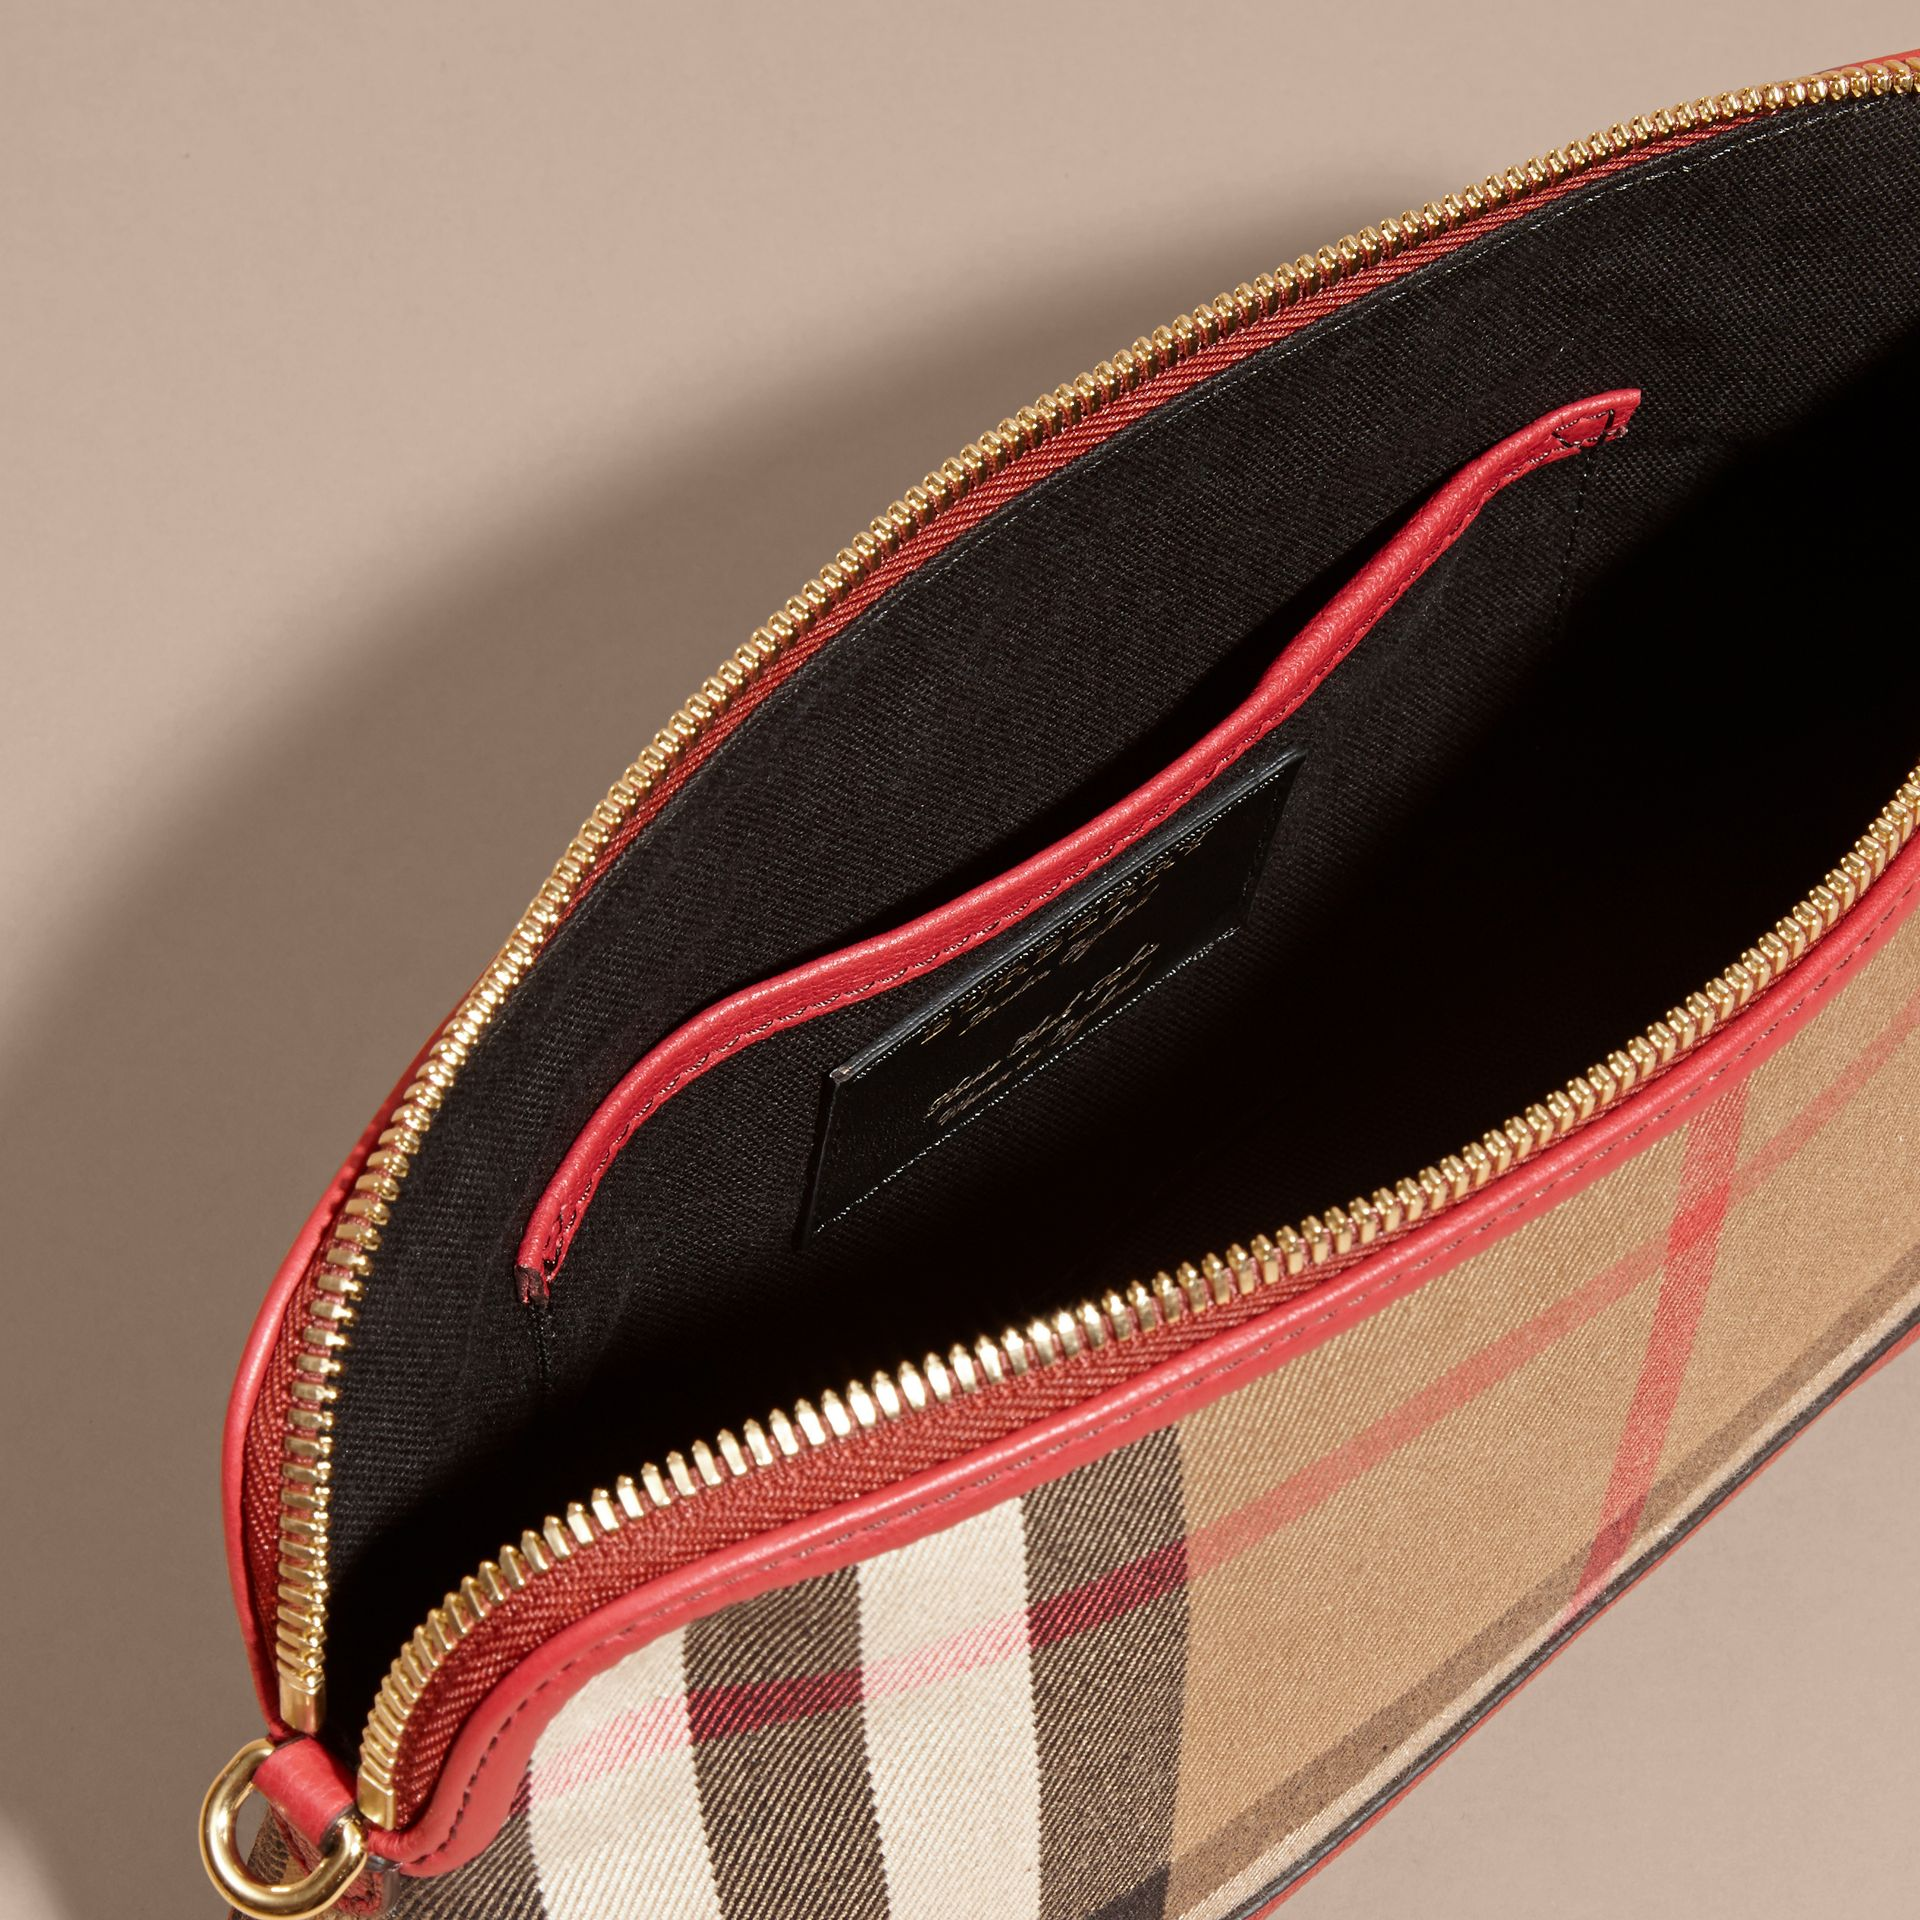 House Check and Leather Clutch Bag in Russet Red - Women | Burberry - gallery image 6